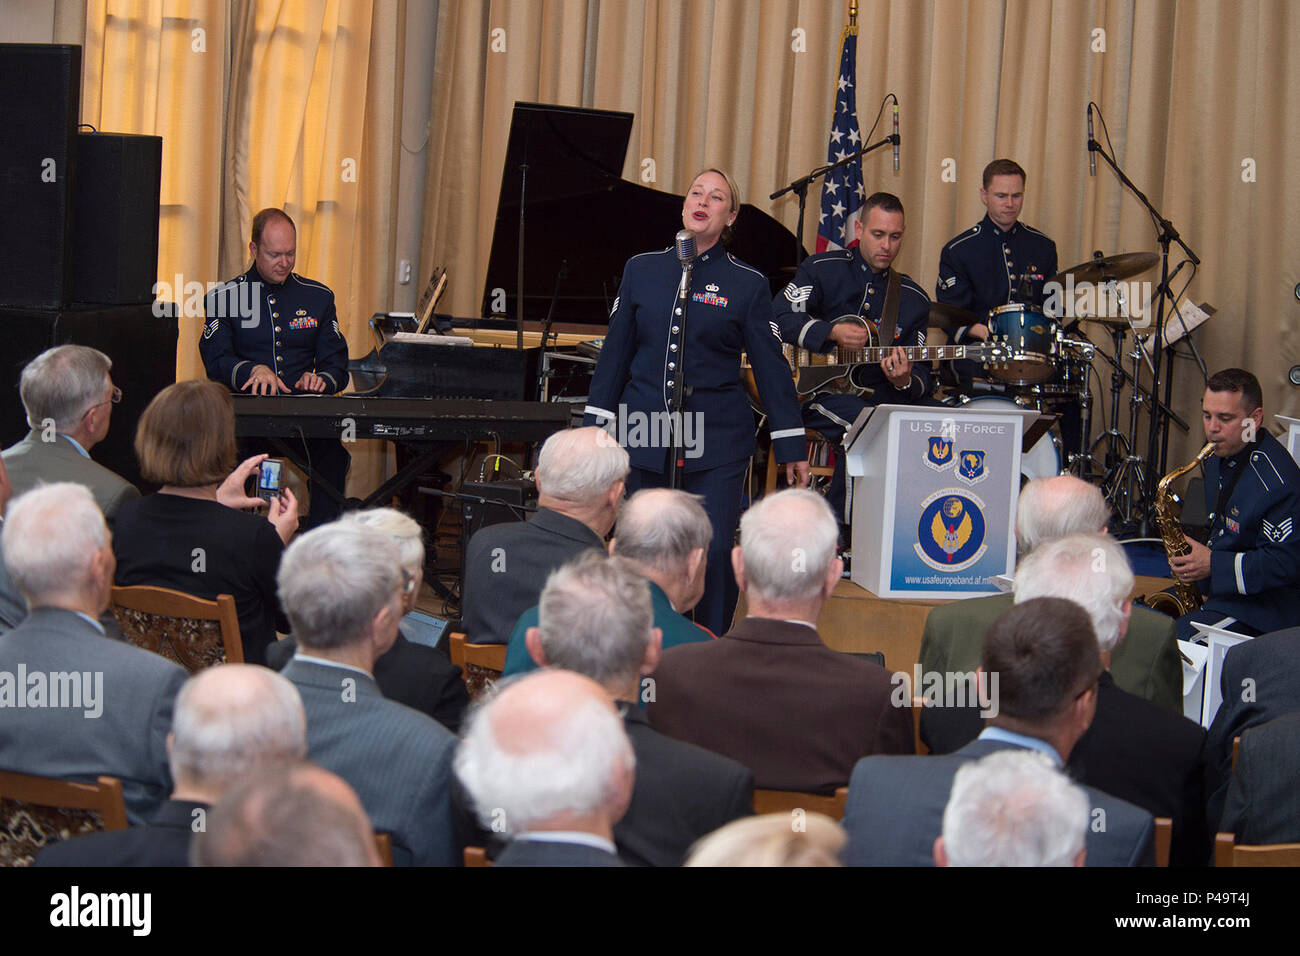 The U.S. Air Forces in Europe's Band Ambassadors Jazz Ensemble performs at the Friendship House June 20, 2016, in Minsk, Belarus. The band played a concert for WWII veterans, Afghanistan conflict veterans and Chernobyl liquidators. Scott Rauland, U.S. Chargé d'Affaires to Belarus, and Svetlana Alexievich, a Nobel Prize laureate, were also in attendance. The United States, Belarus, and other ally and partner nations continue to remember and honor shared World War II sacrifices. The USAFE Band's performances reflect shared memories and seek to encourage future partnerships. Stock Photo